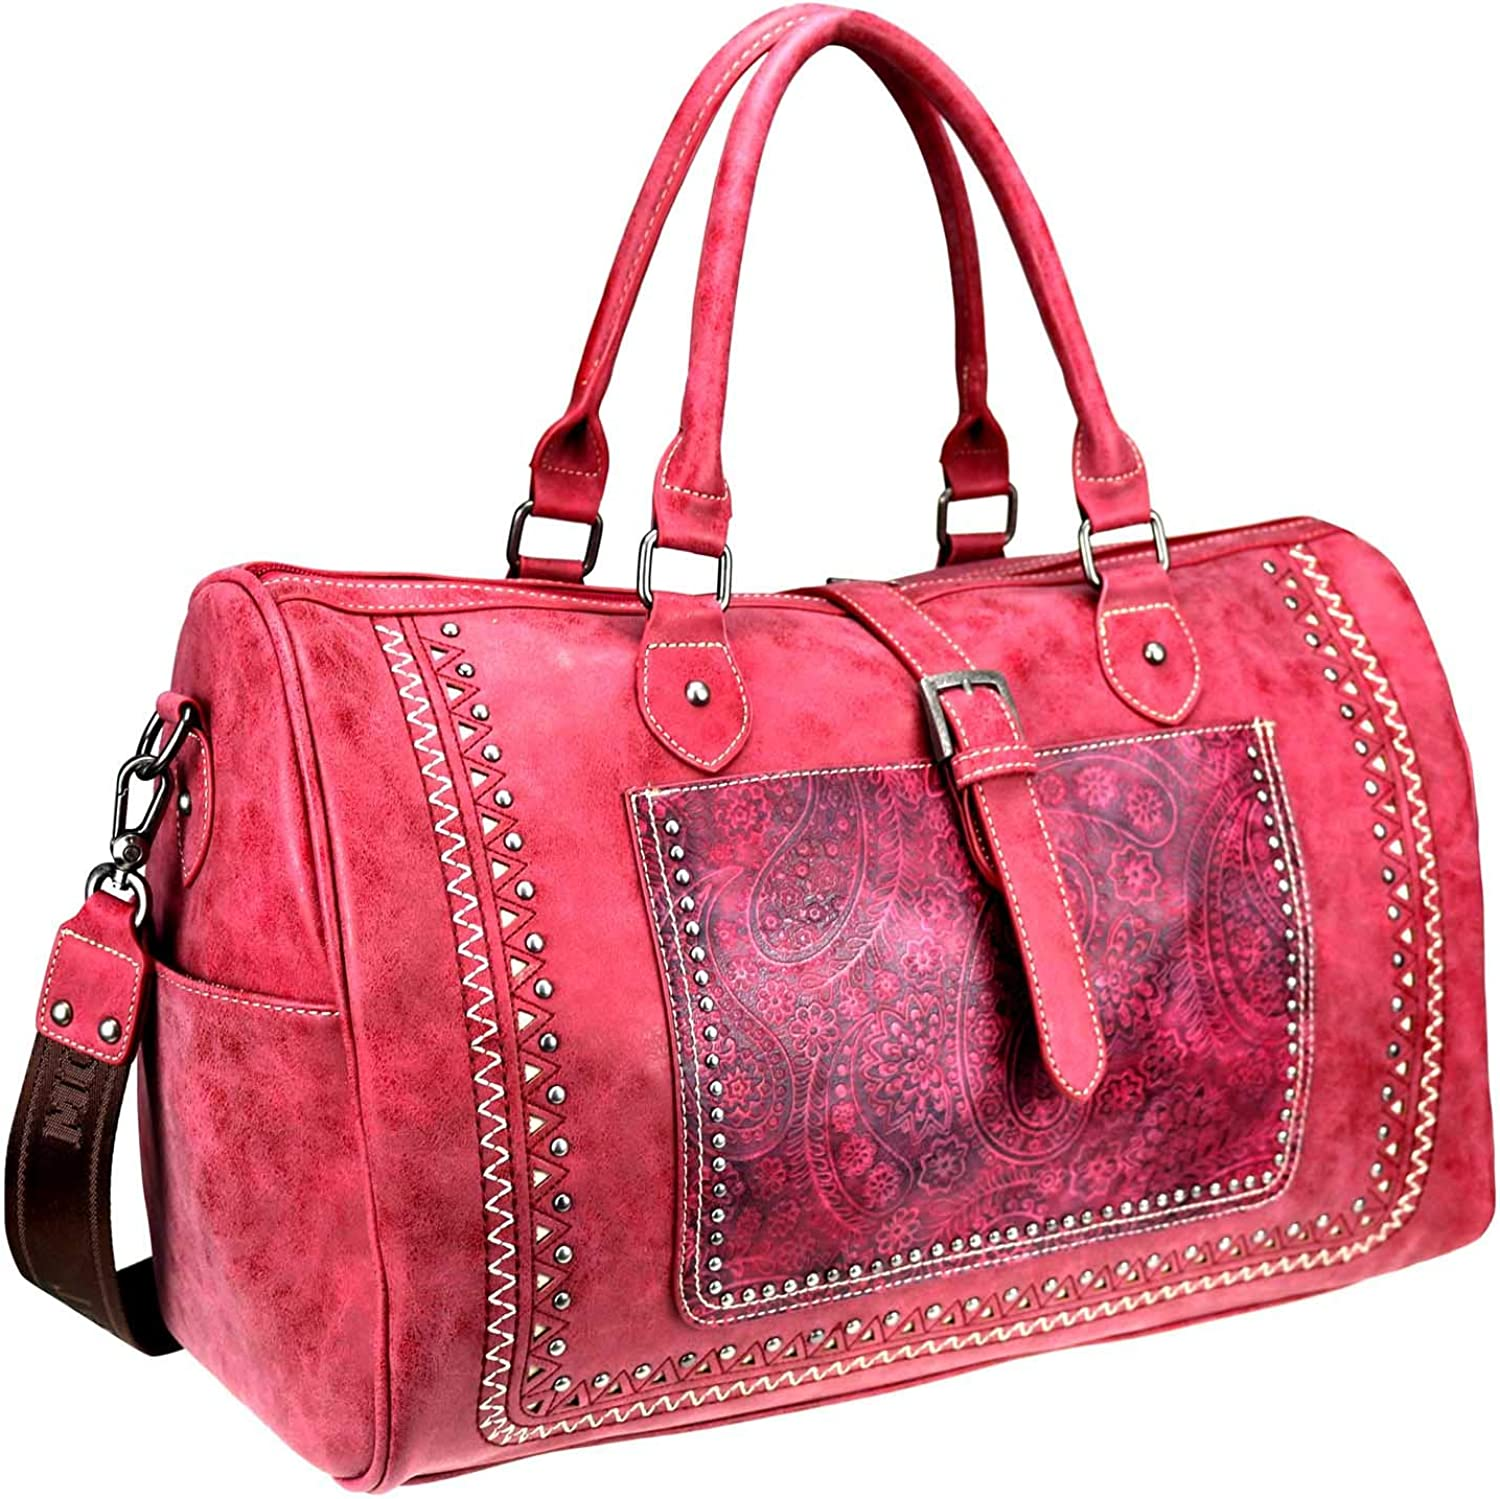 Montana West Buckle Leather Travel Duffle Bags Western Aztec Sugar Skull Sport Gym Bag For Women Red MW 947-5110 RD